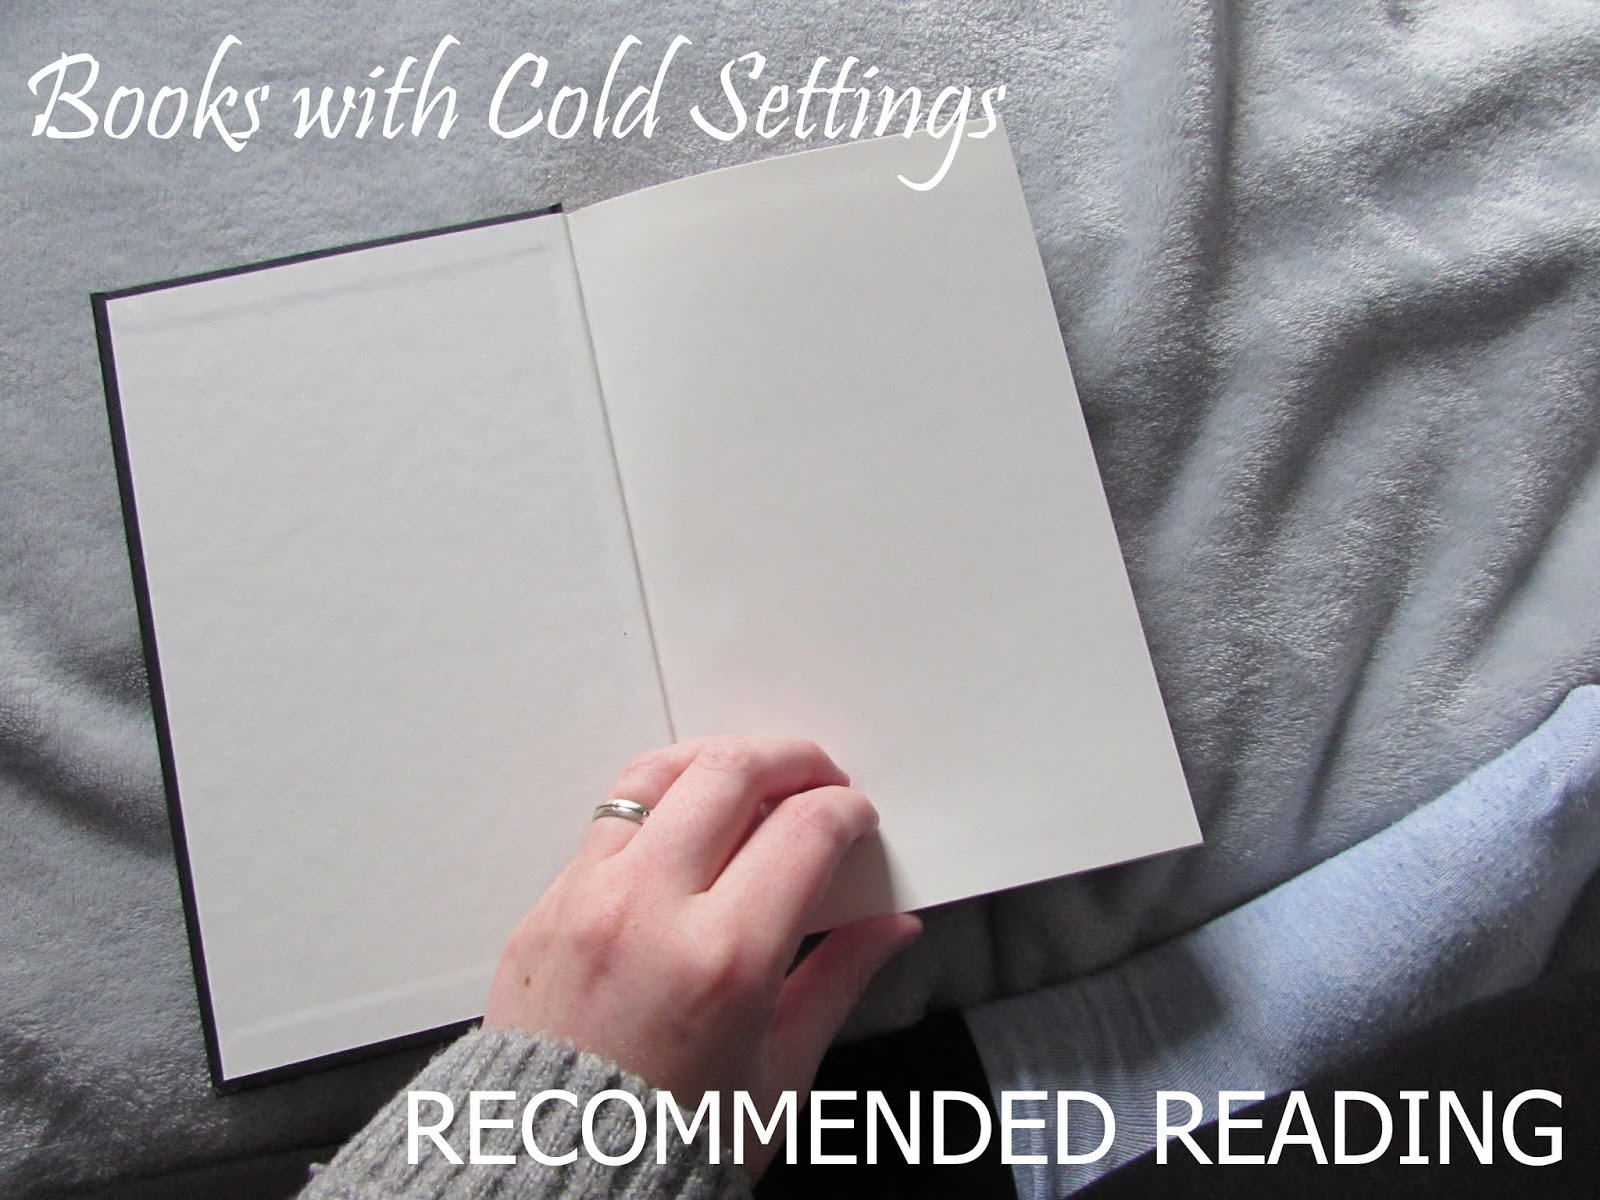 Recommended Reading | Books with Cold Settings